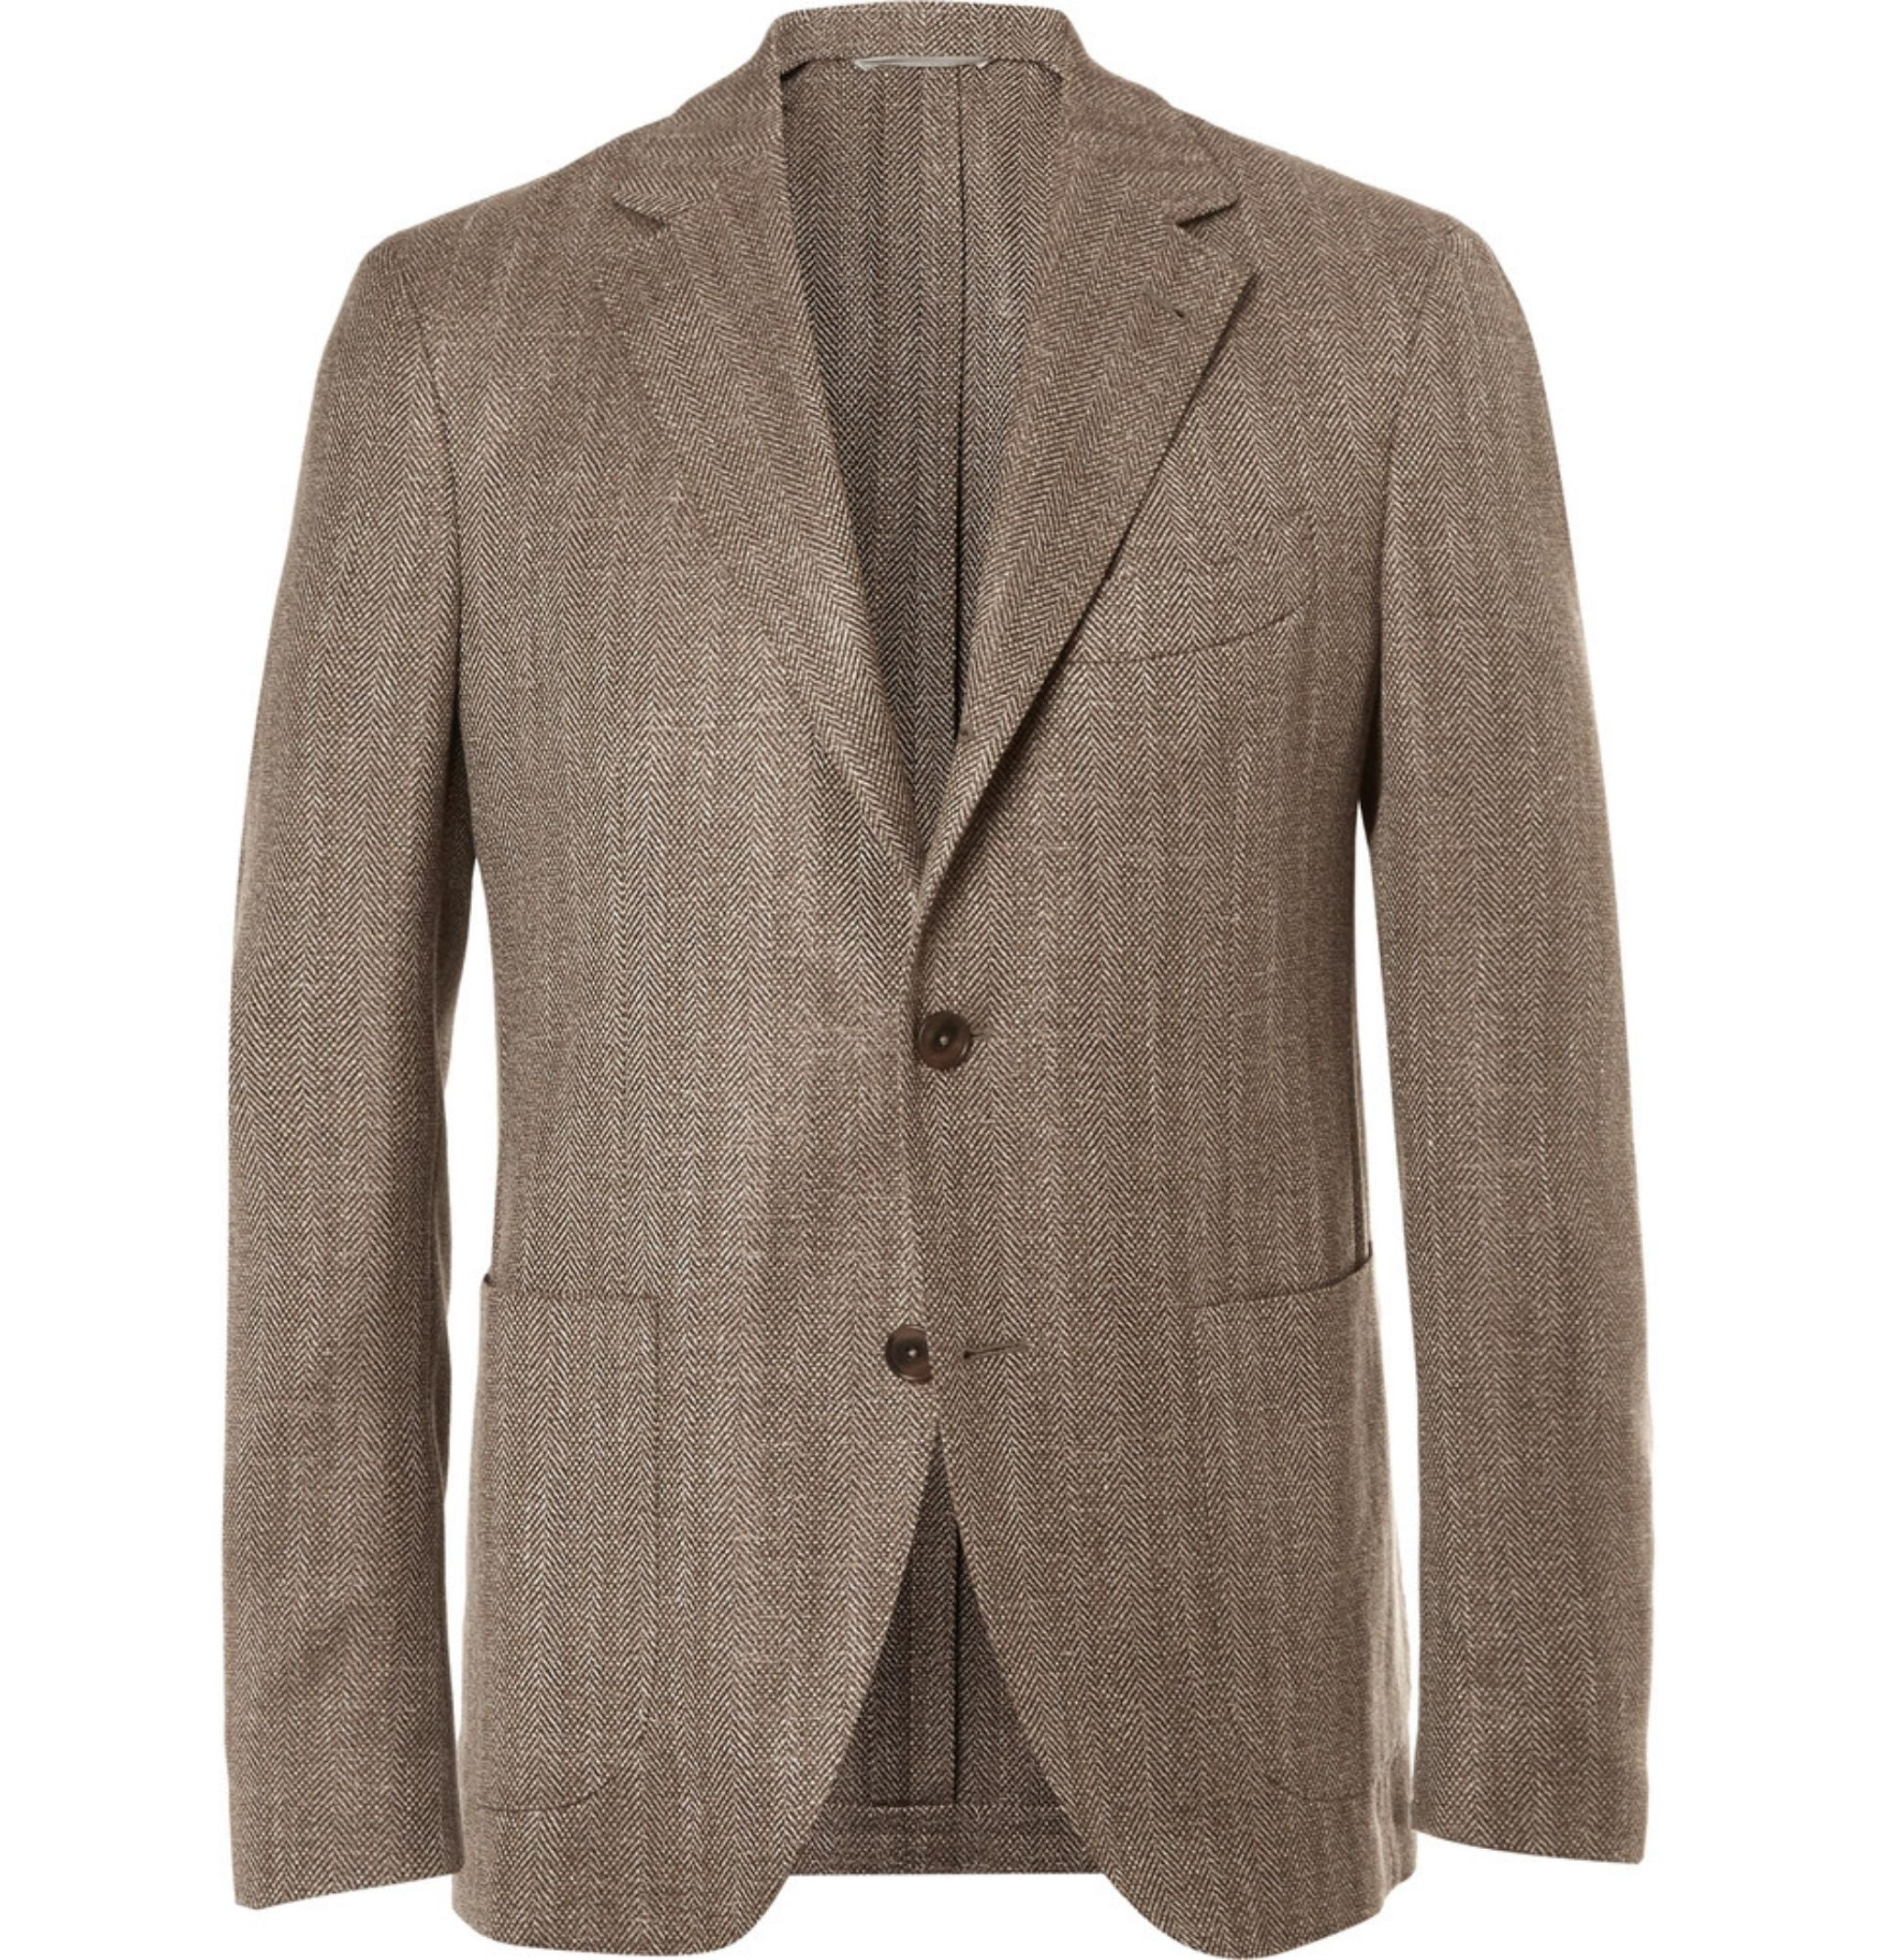 Sport coat for spring and summer - herringbone sport coat by Etro